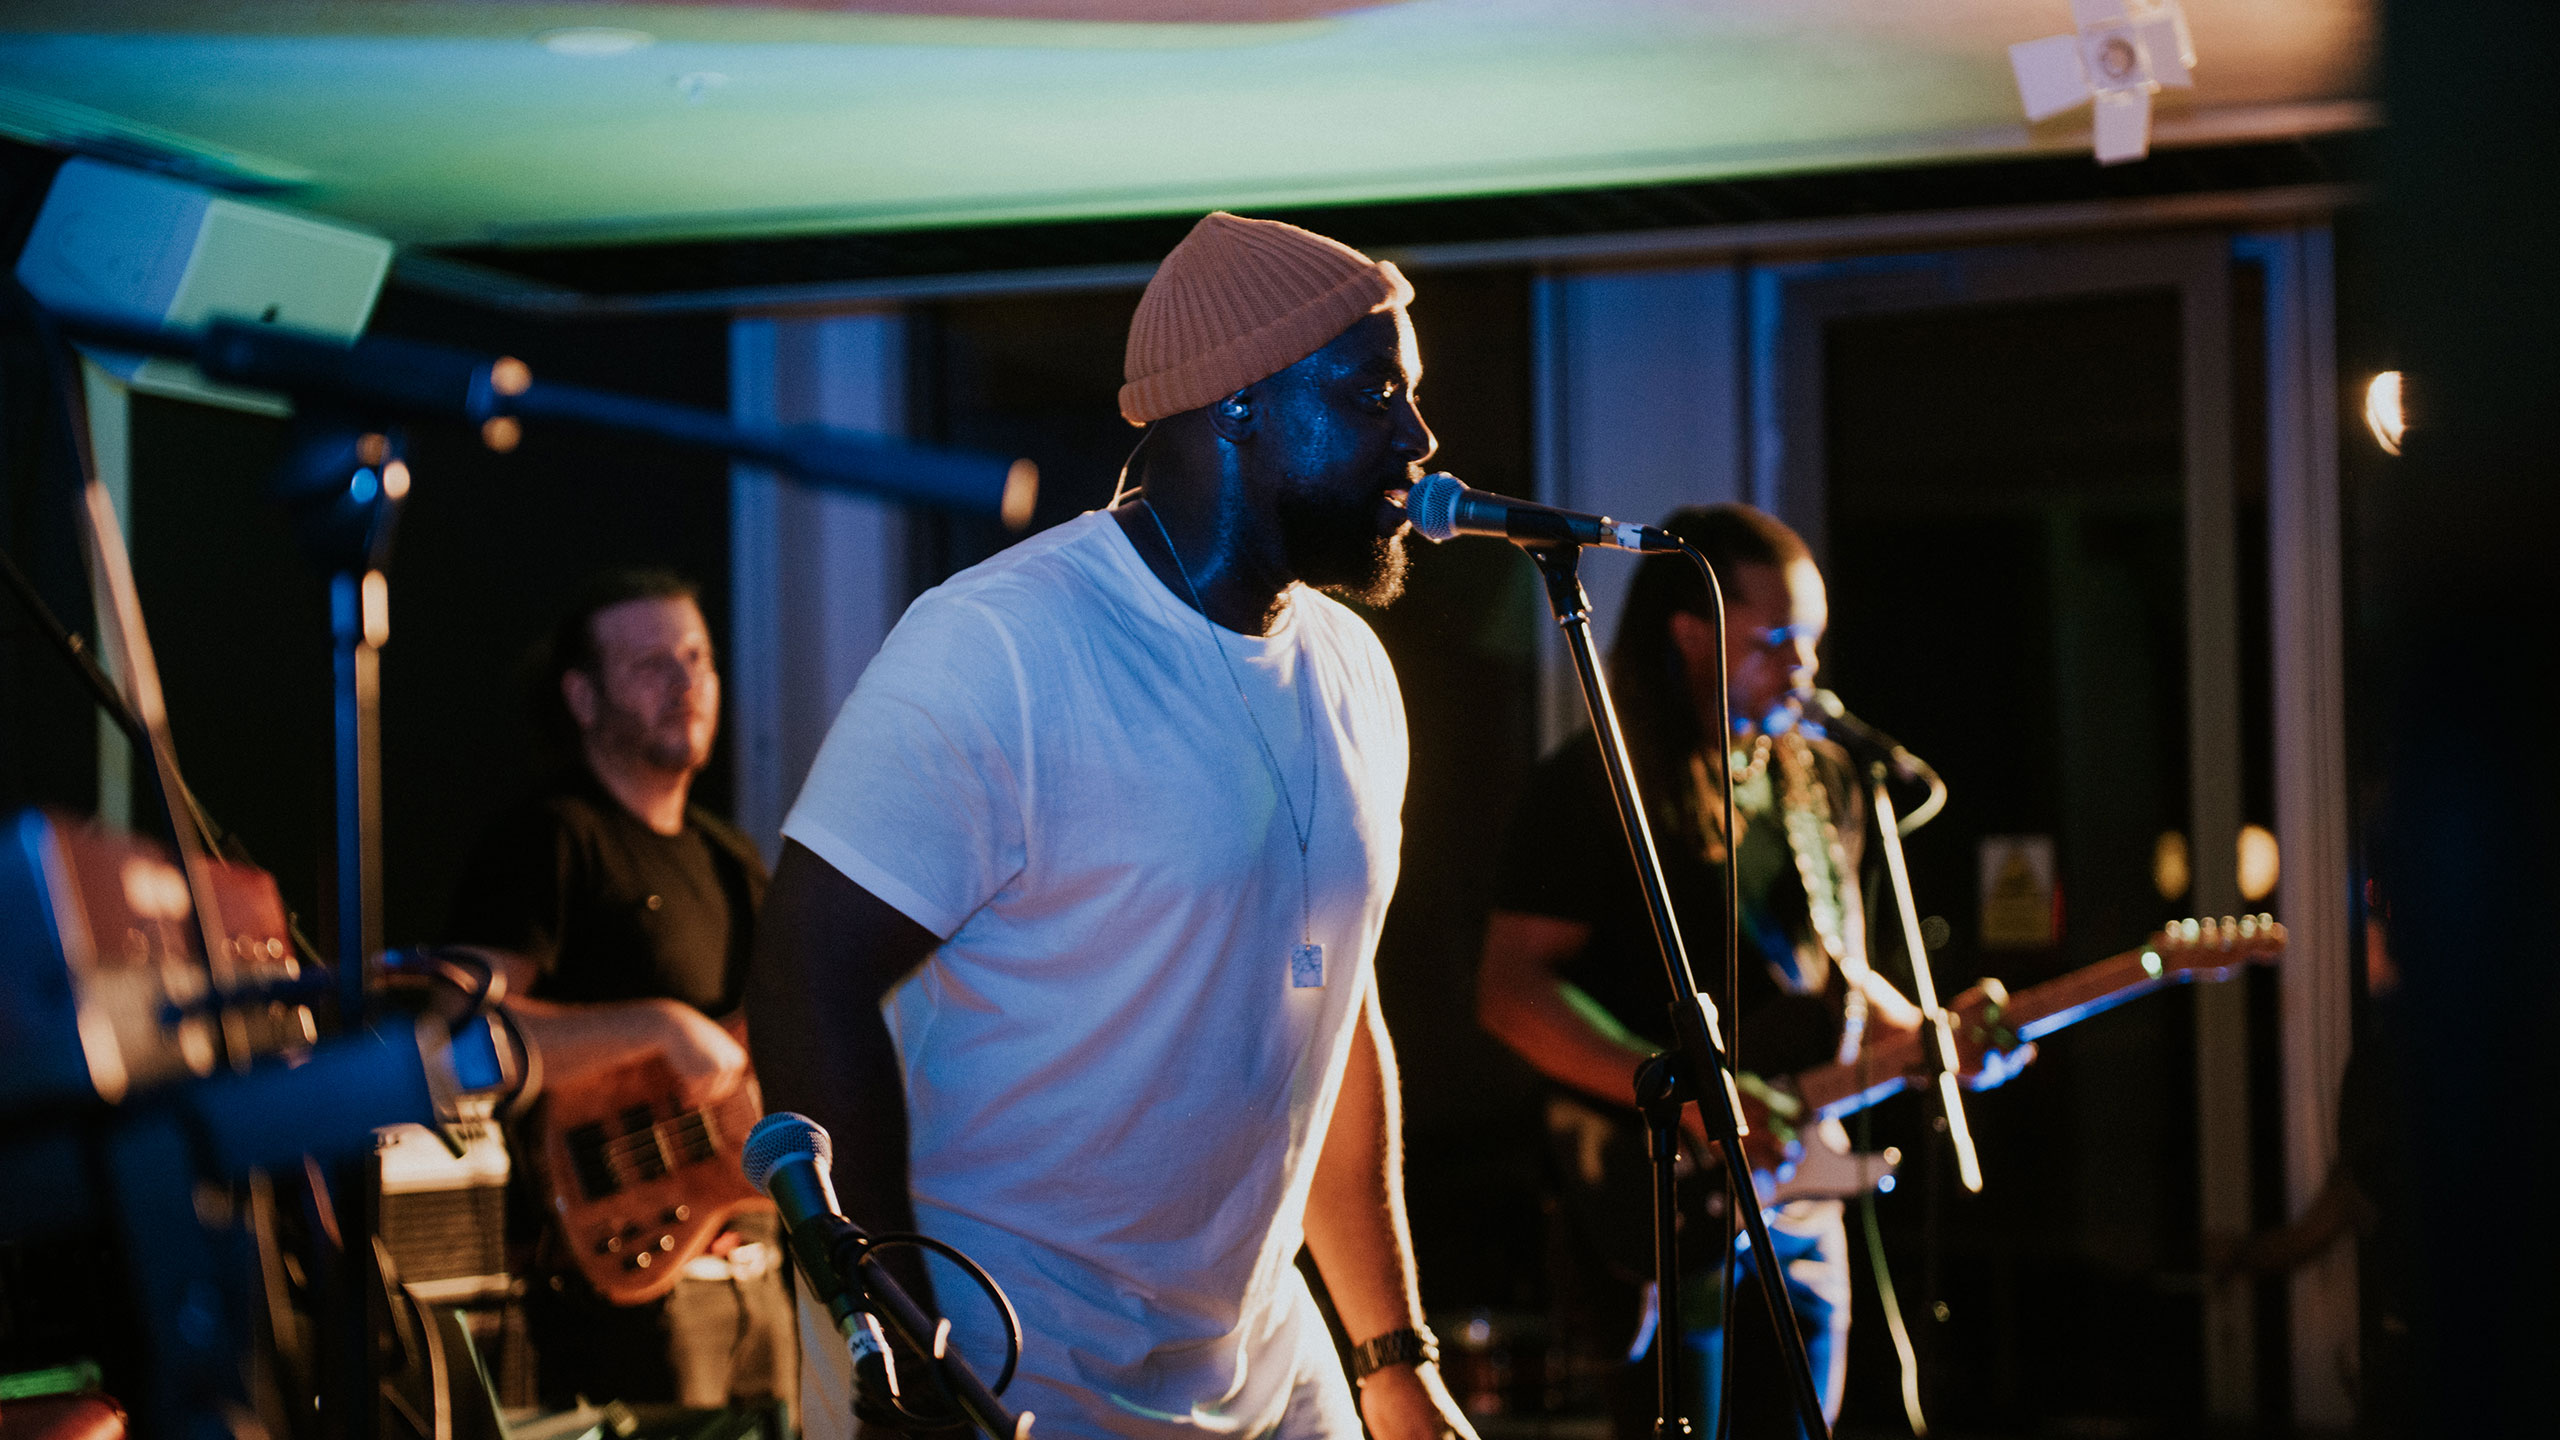 Jodie Abacus, wearing a white t shirt and orange beanie hat, sings into the microphone at PRS for Music Presents with a guitarist and bass guitarist visible behind him